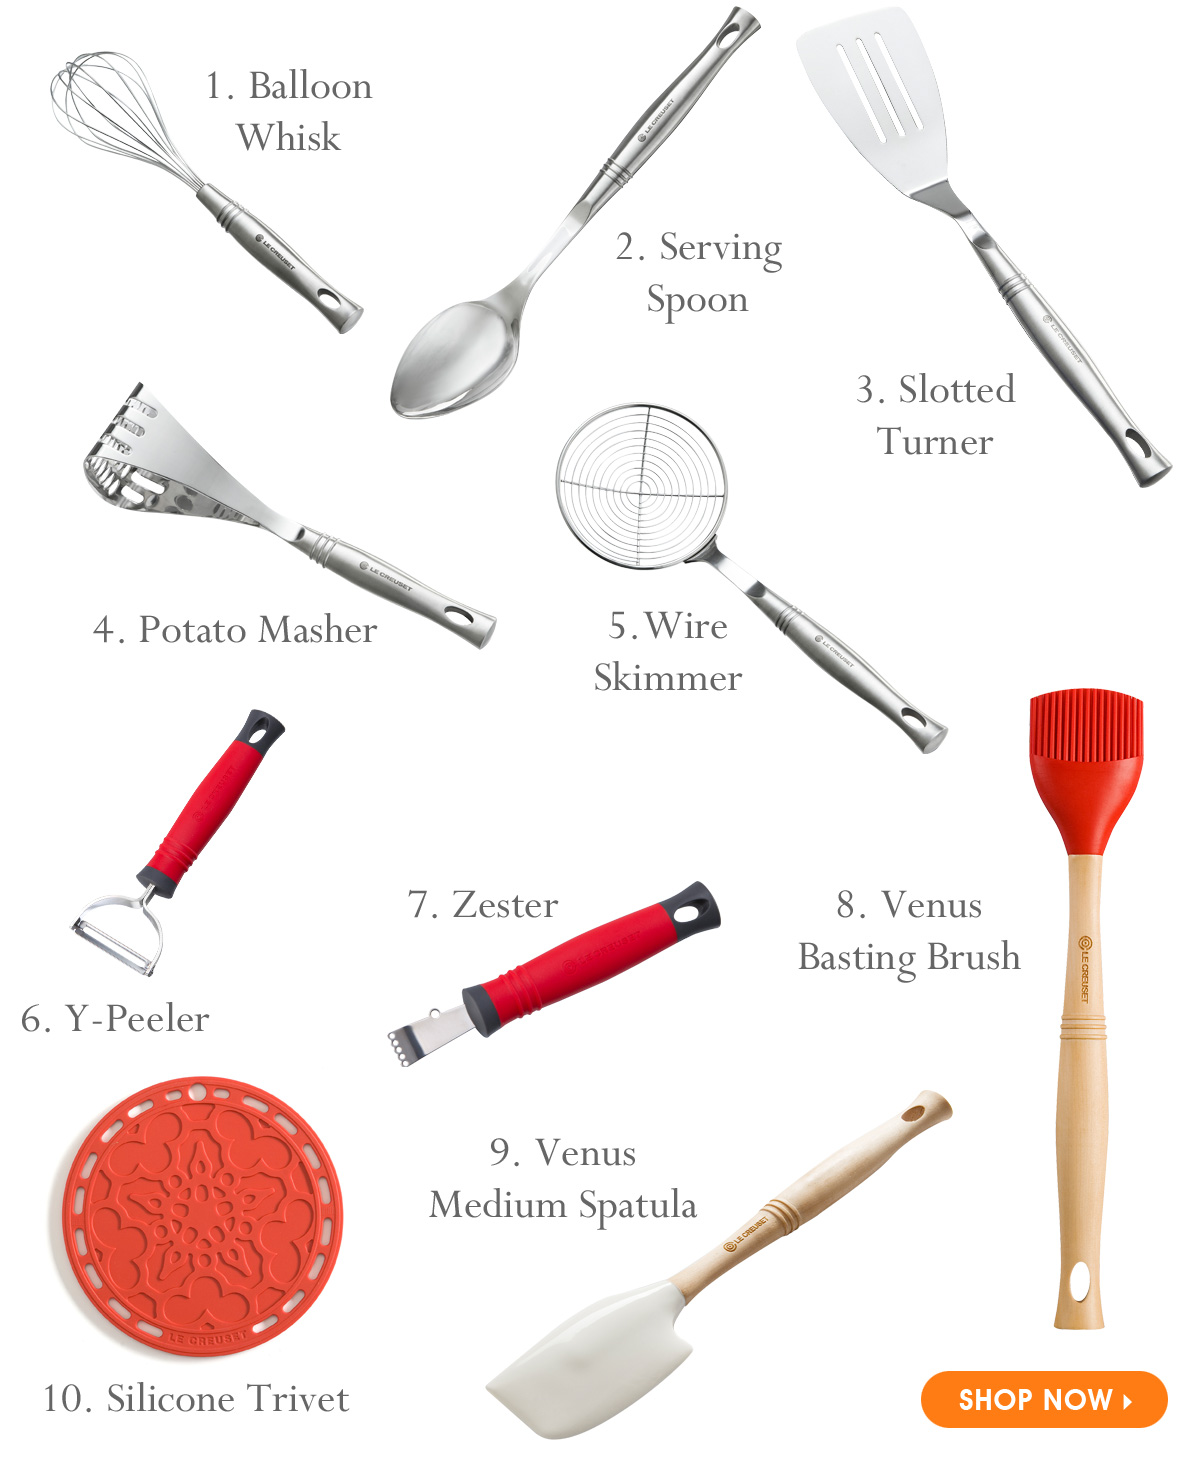 Kitchen Utensils Names Pictures And Uses